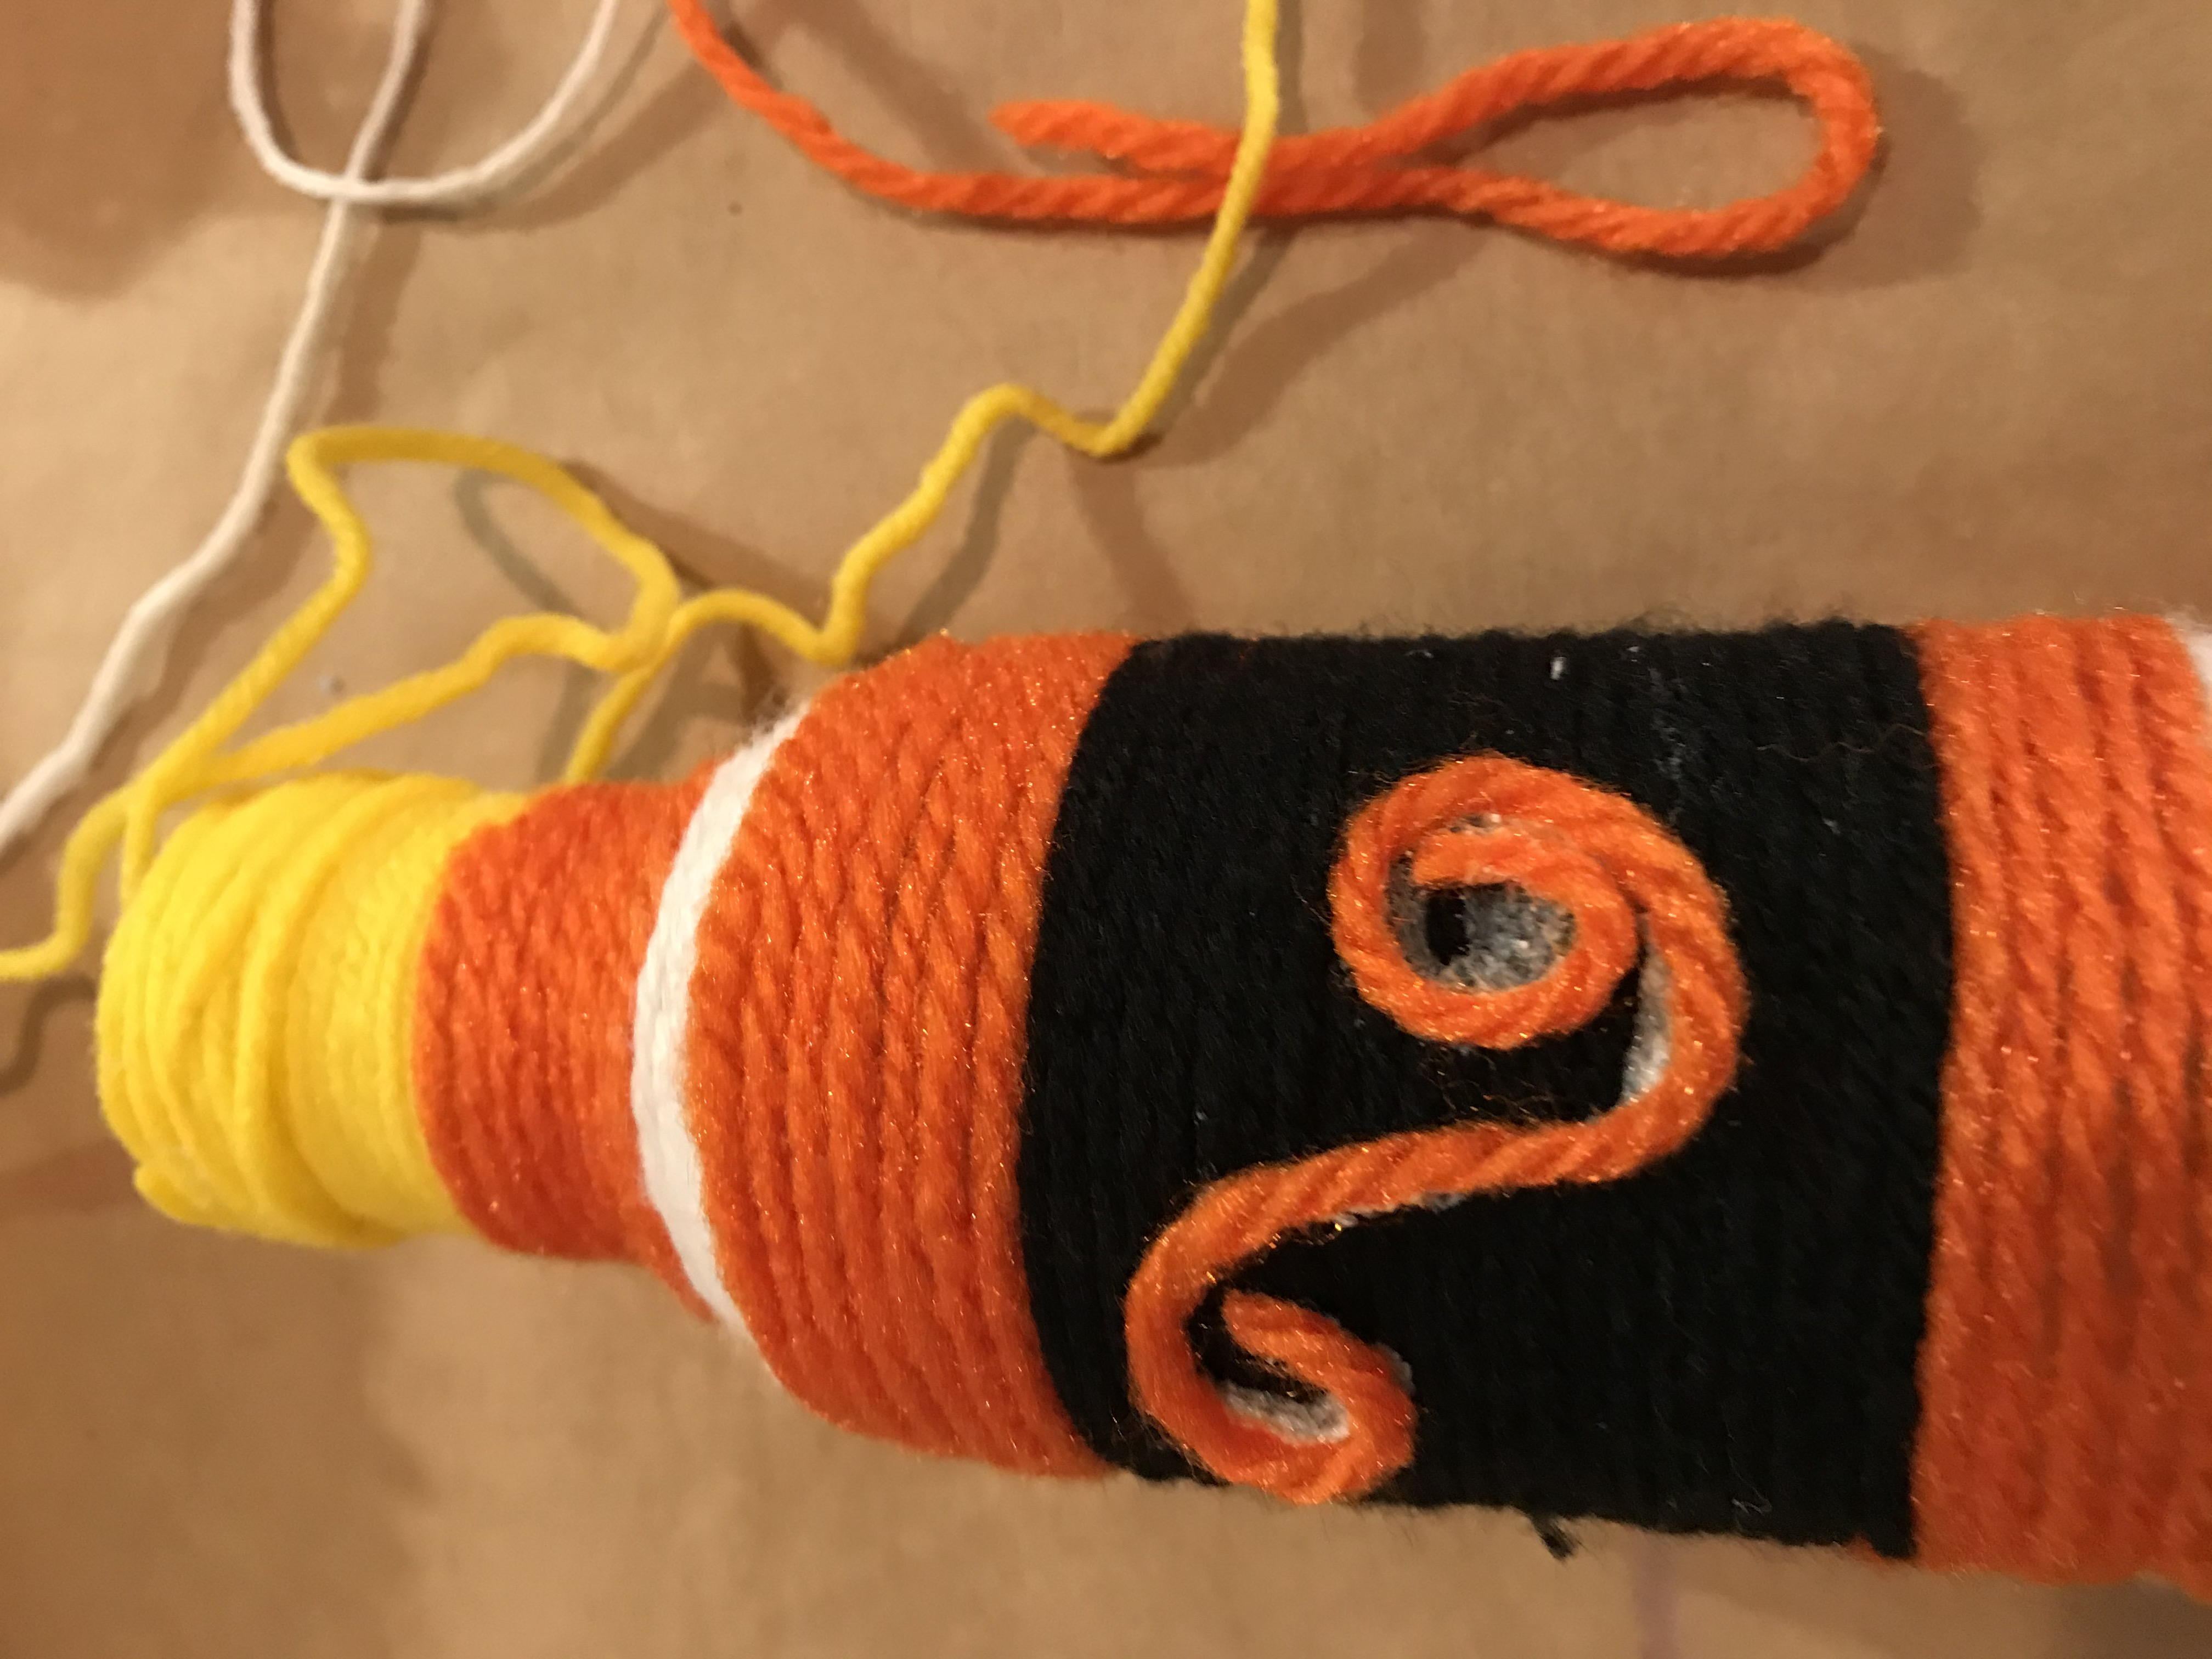 Or dip the yarn/string into a shallow bowl of glue and lay it down creating your design as you go.